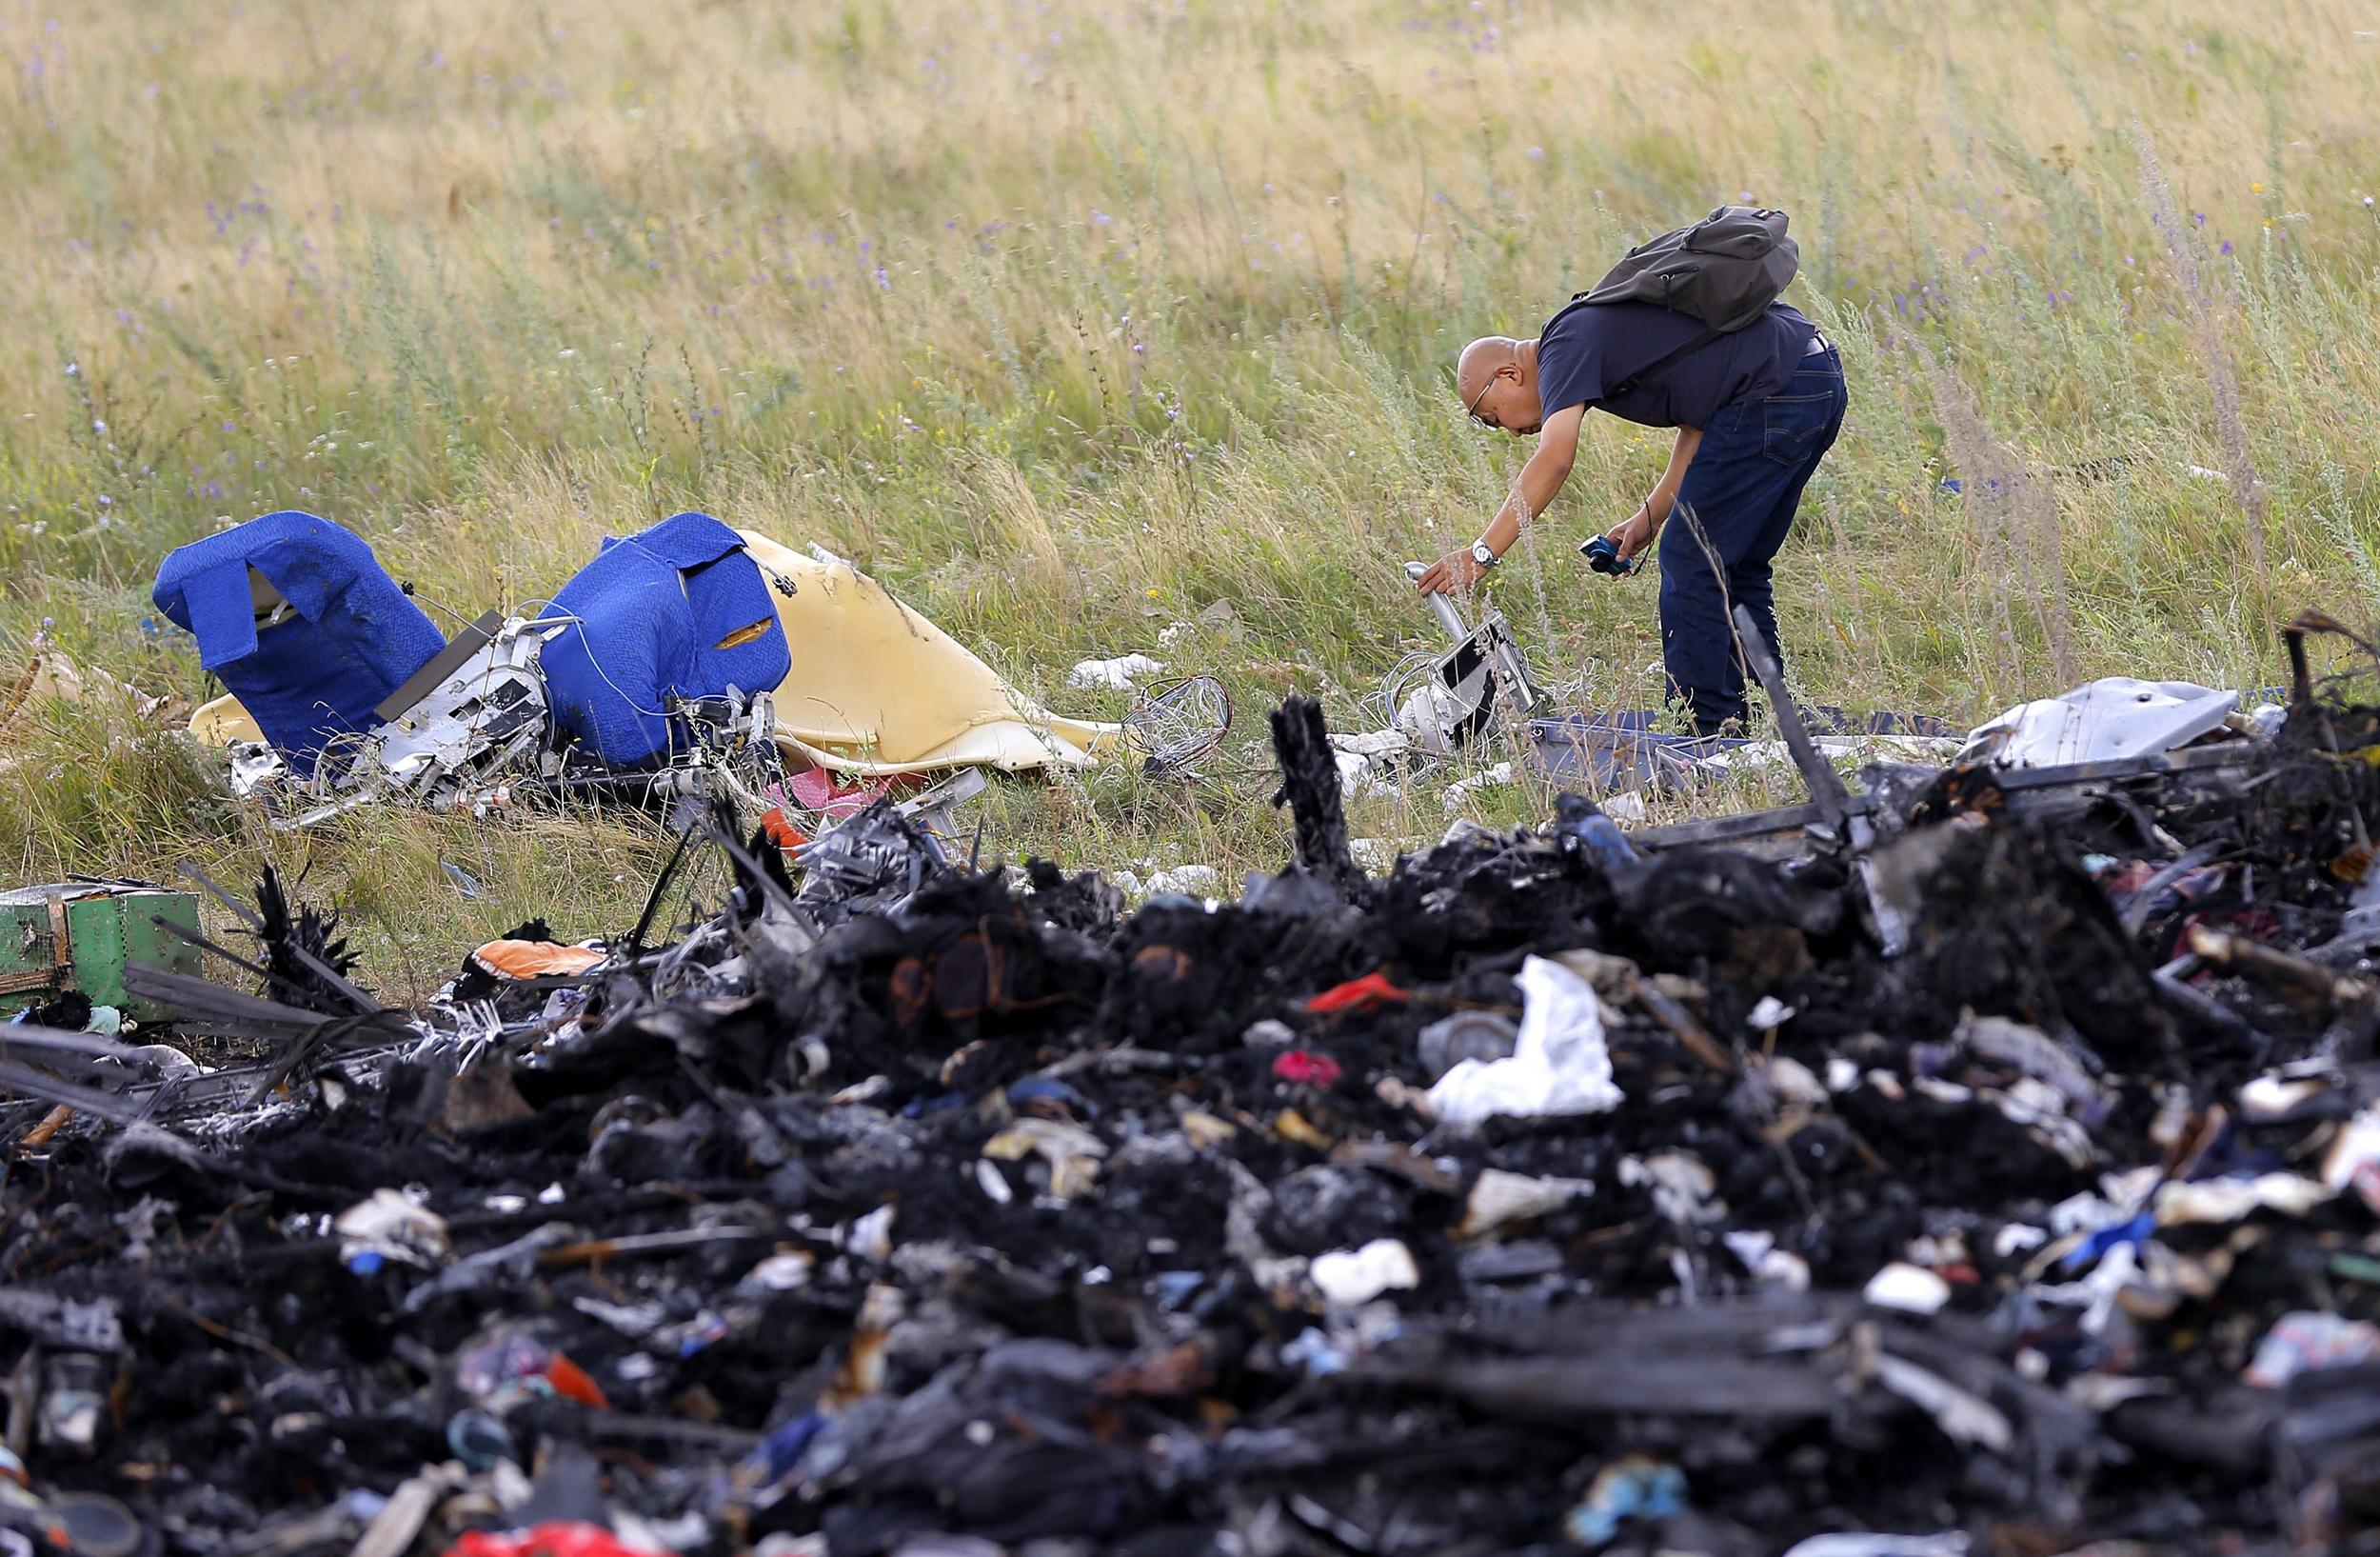 Image: A Malaysian expert checks debris at the main crash site of the Boeing 777 Malaysia Airlines flight MH17, which crashed flying over the eastern Ukraine region